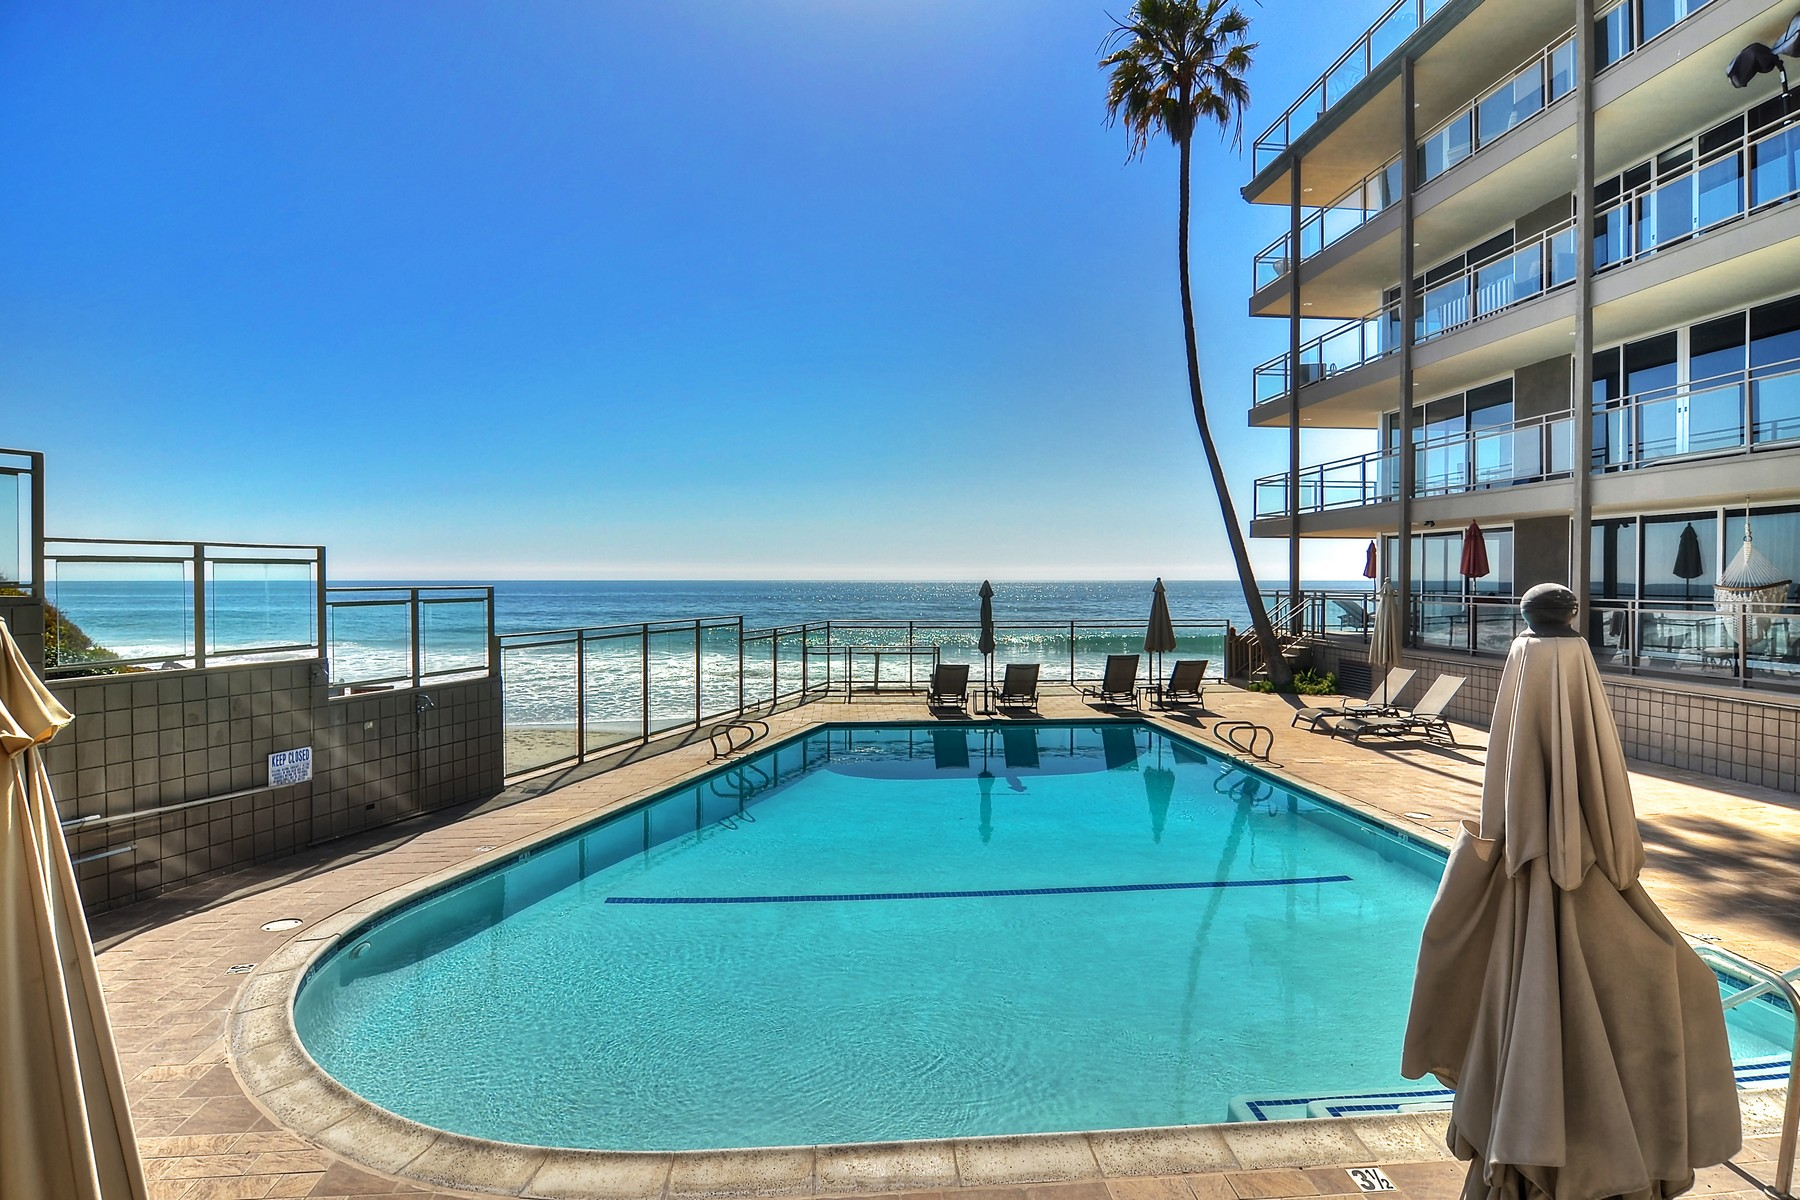 Condominio por un Venta en 1585 South Coast Highway #4 Laguna Beach, California, 92651 Estados Unidos